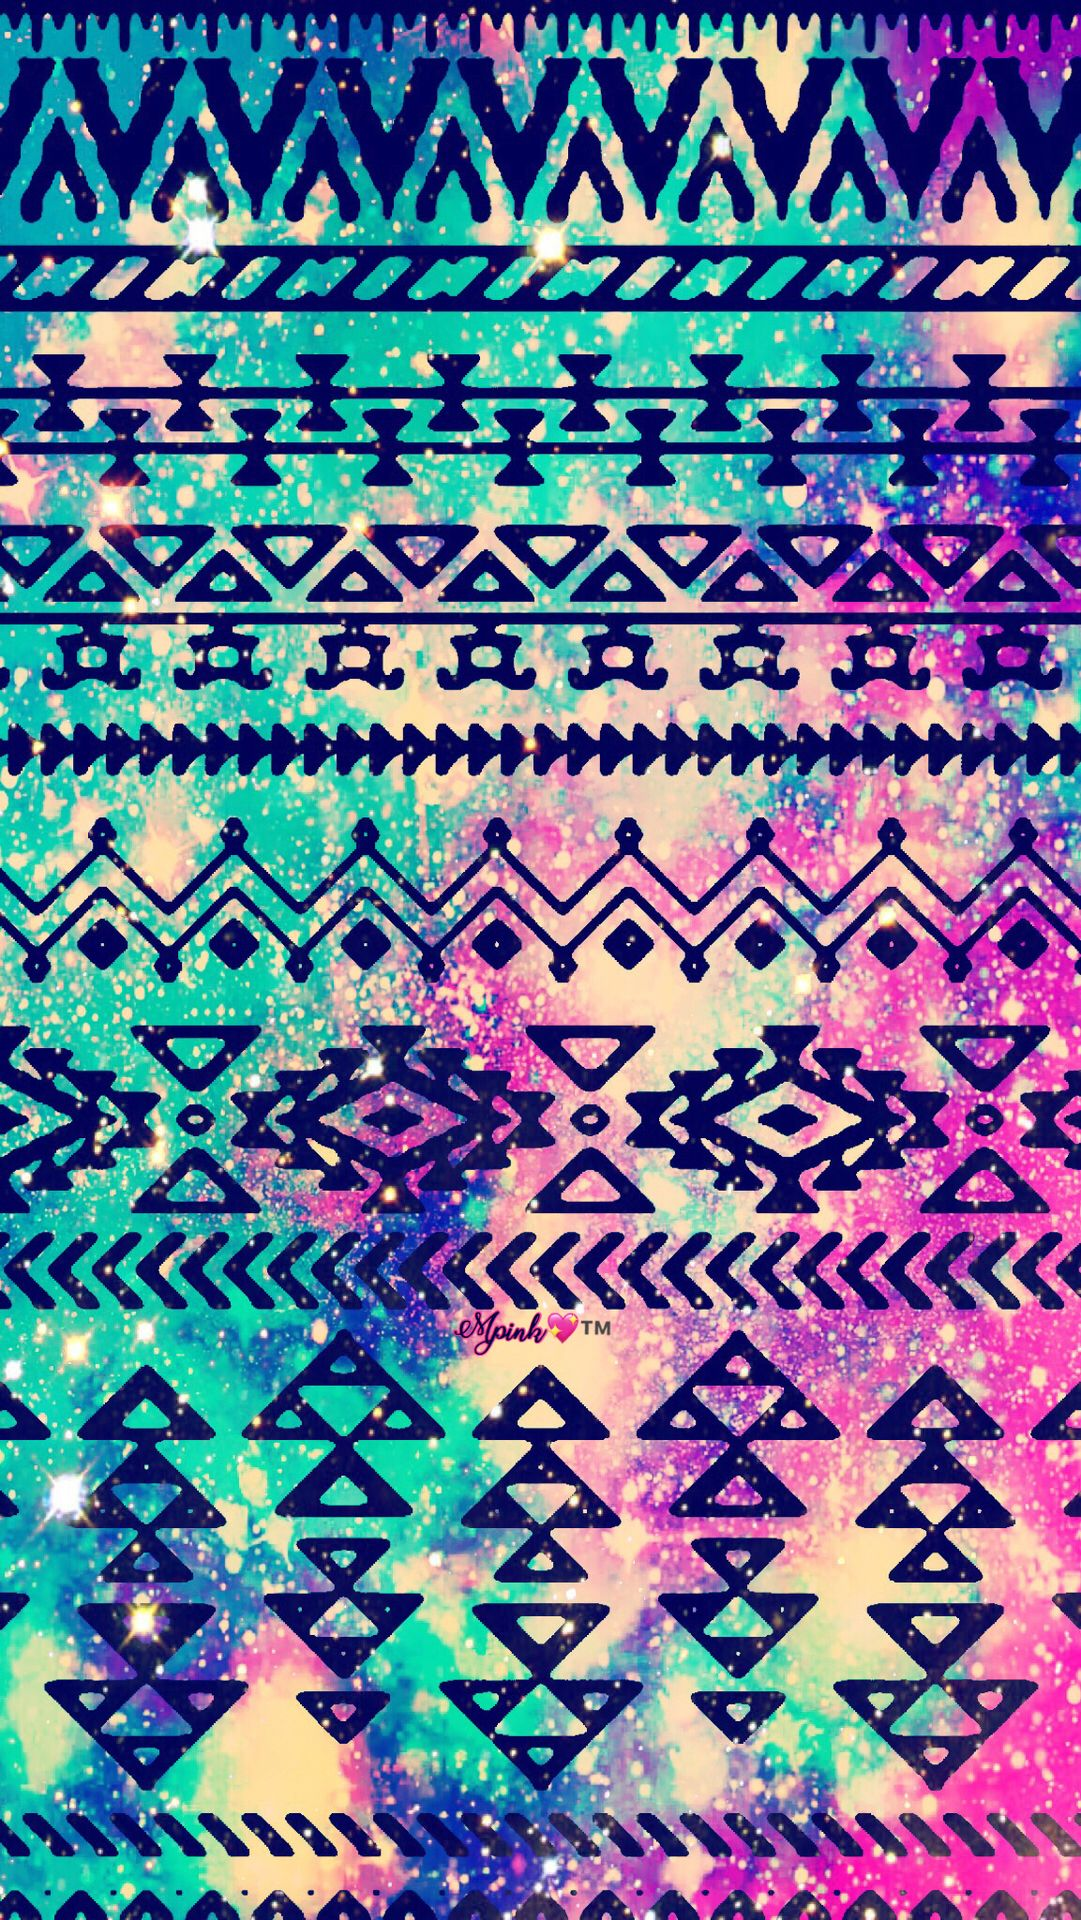 Backgrounds Tribal Sparkly Cute